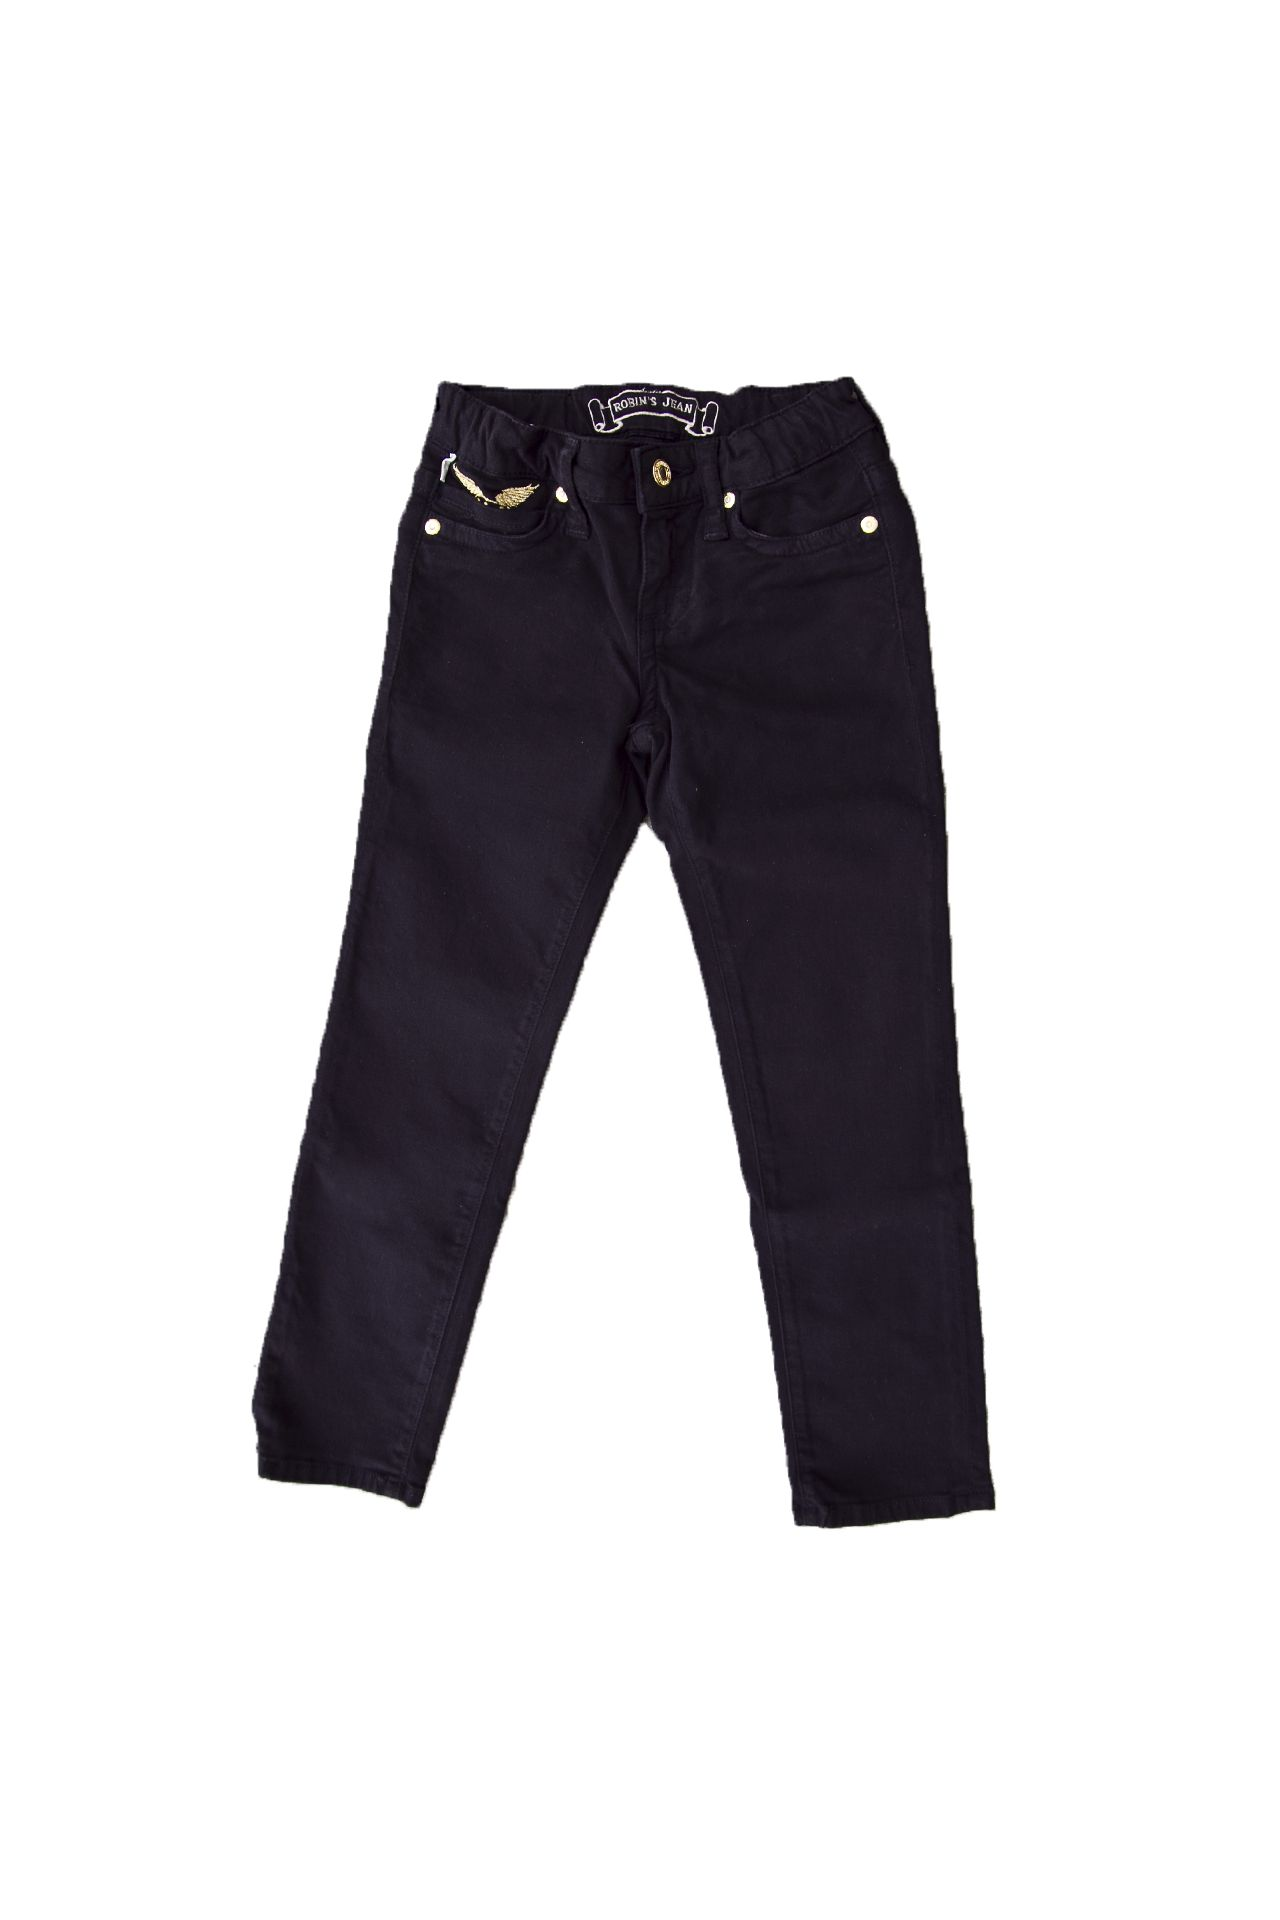 KID PANTS BLACK STUDDED